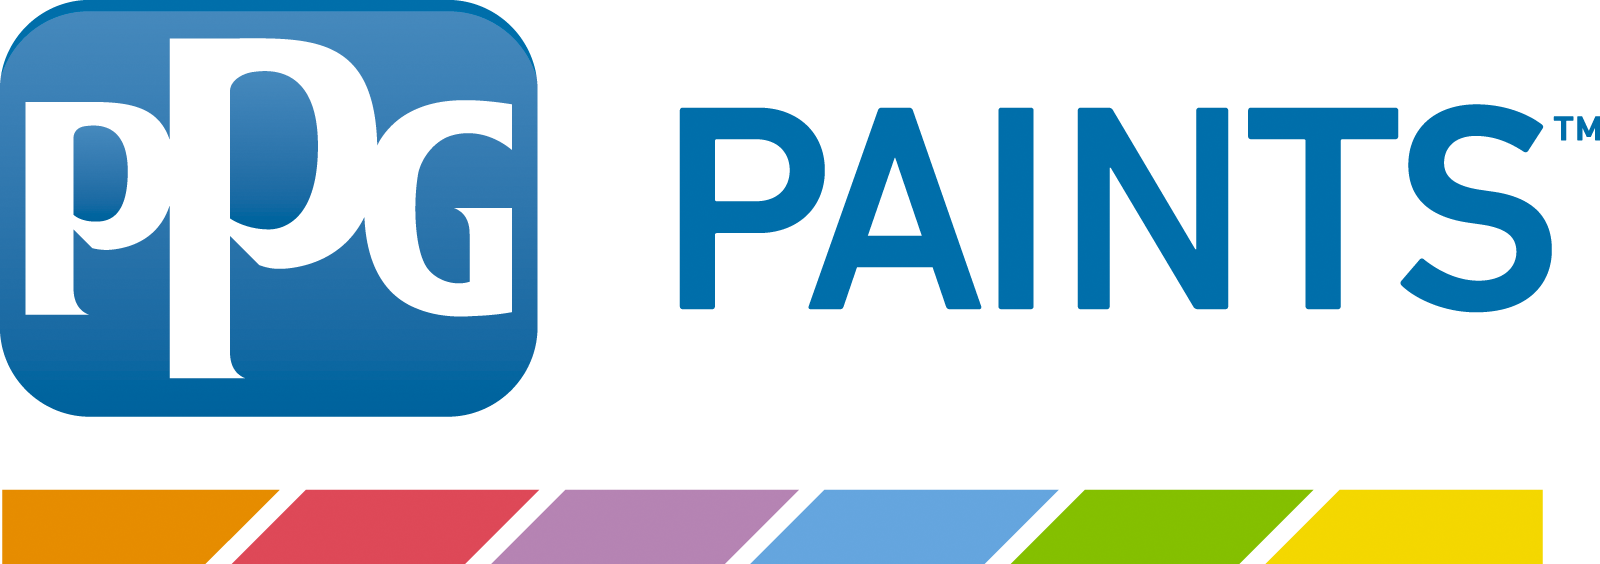 PPG-Paints-Color-Bar-2016.png